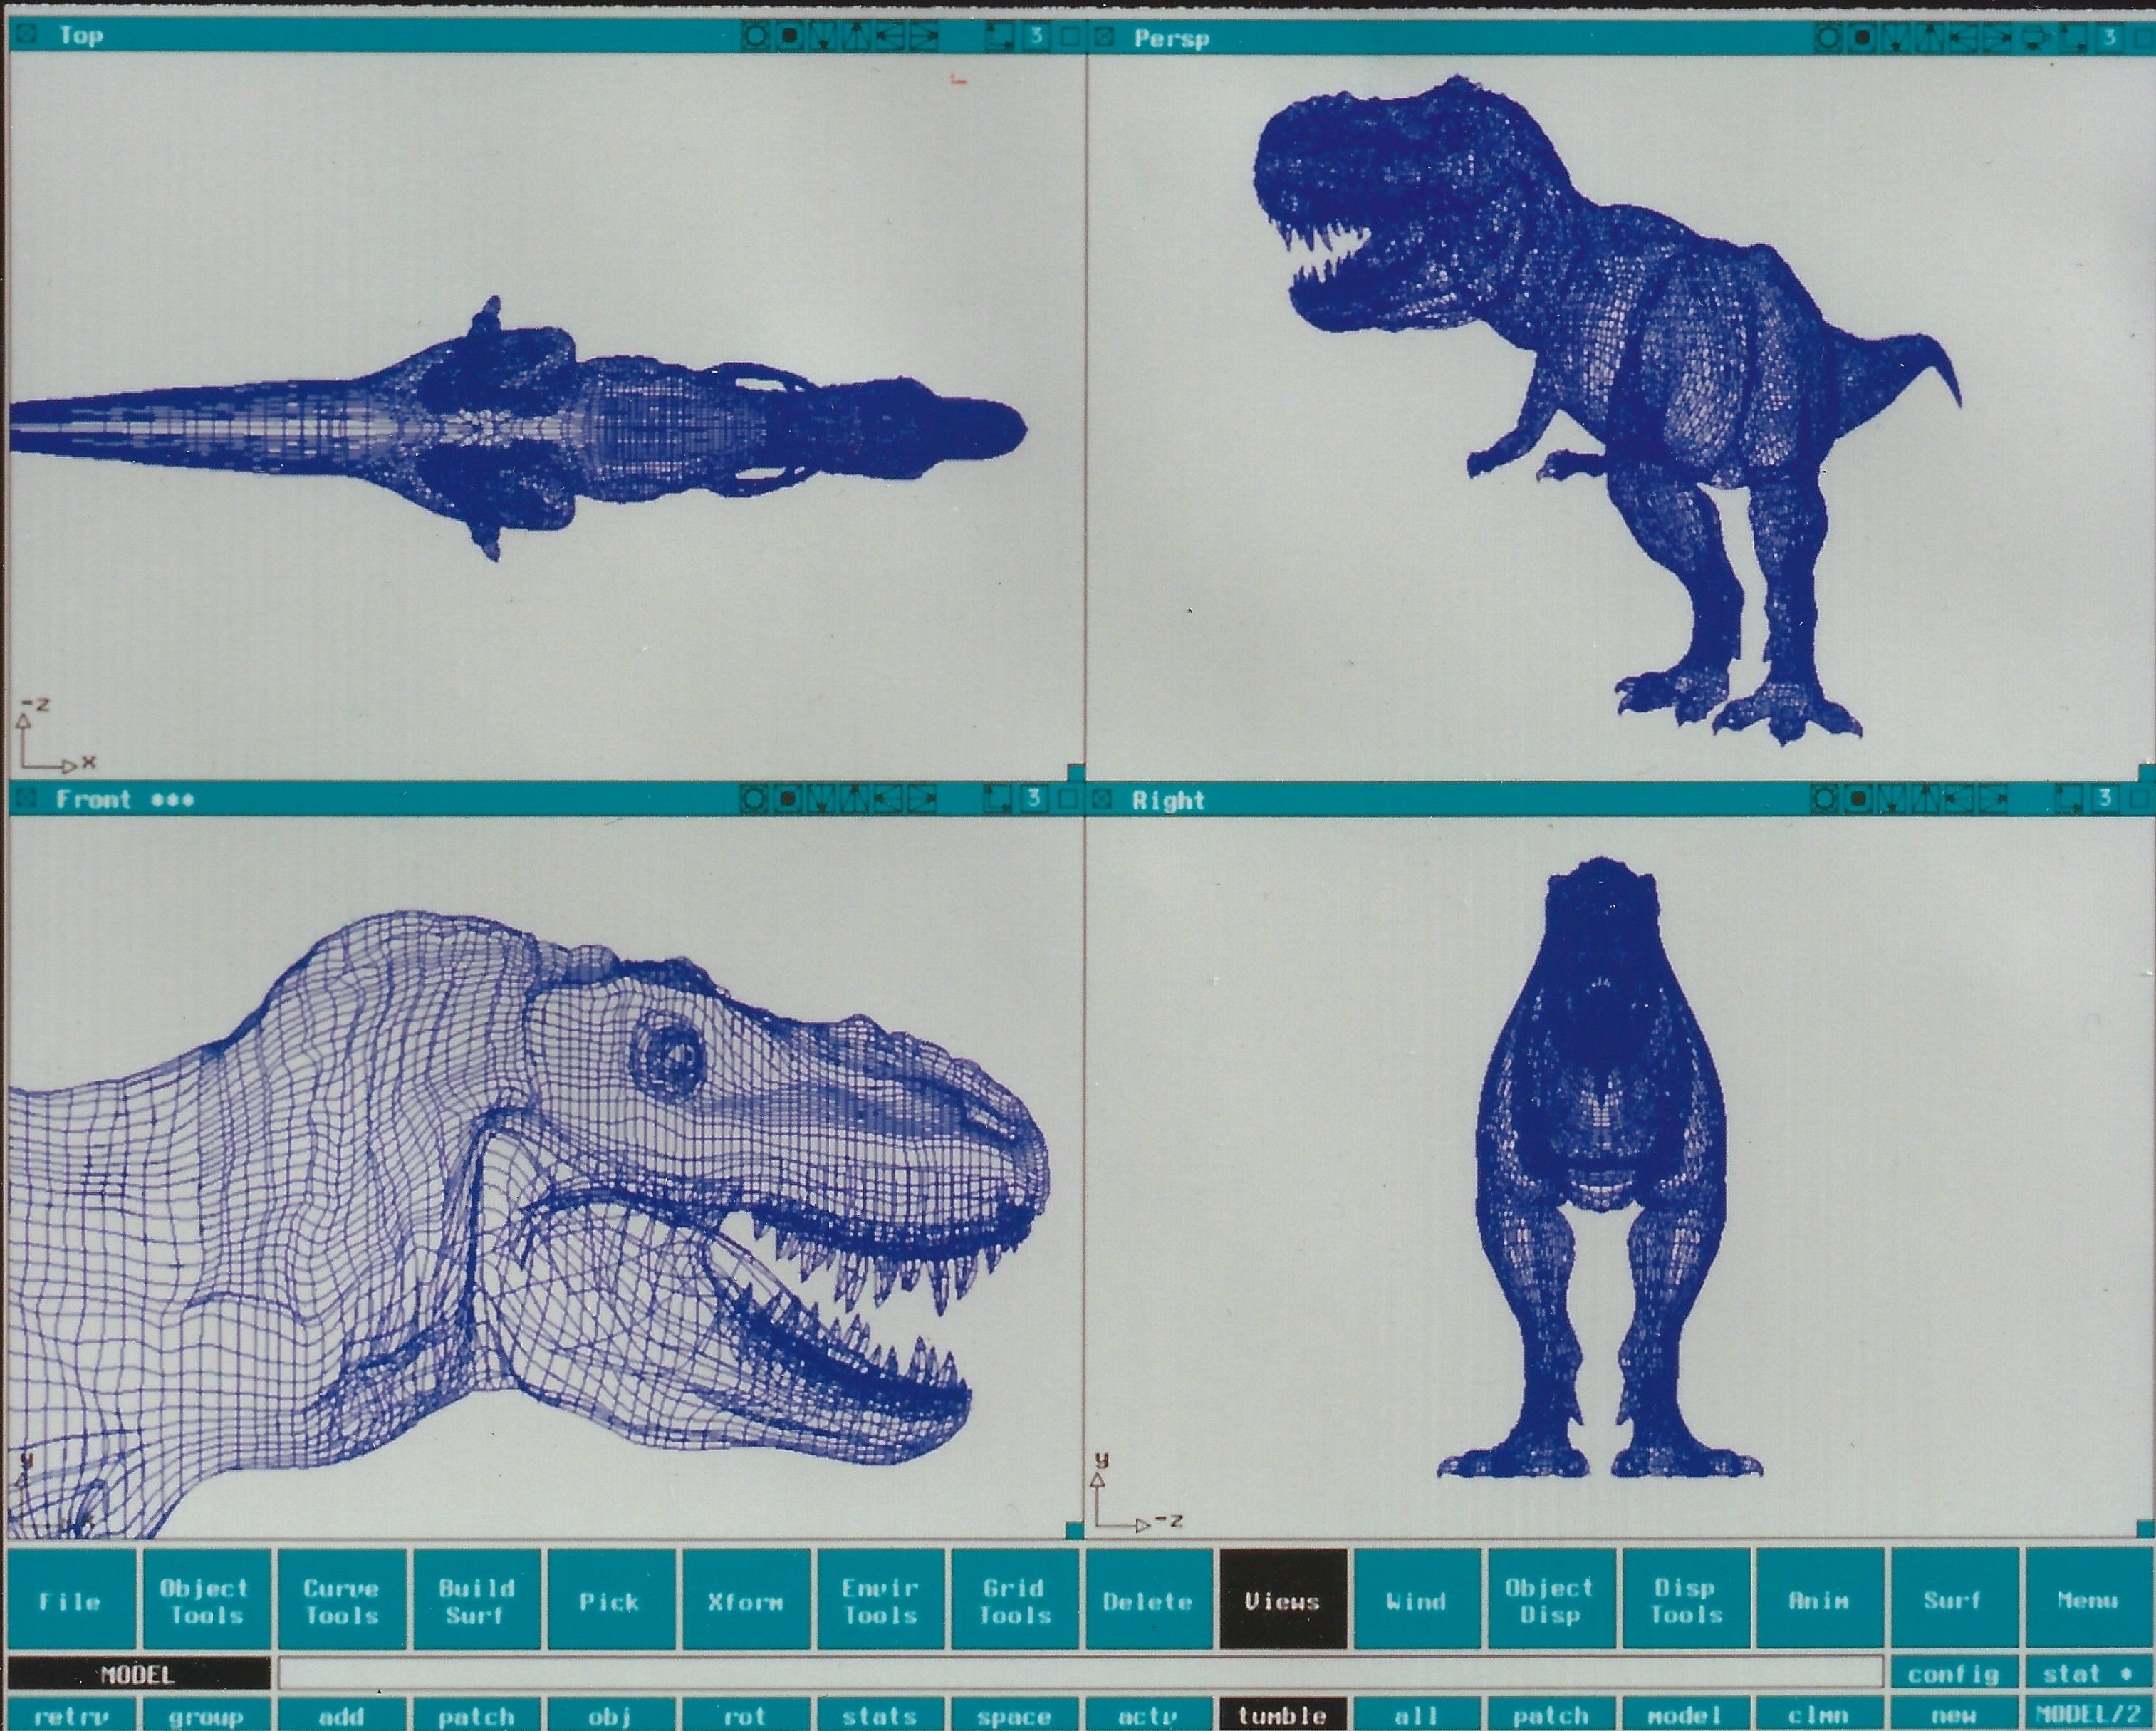 How 4 Minutes Of Cgi Dinosaurs In Jurassic Park Took A Year To Make Jurassic Park Dinosaur Jurassic Park World